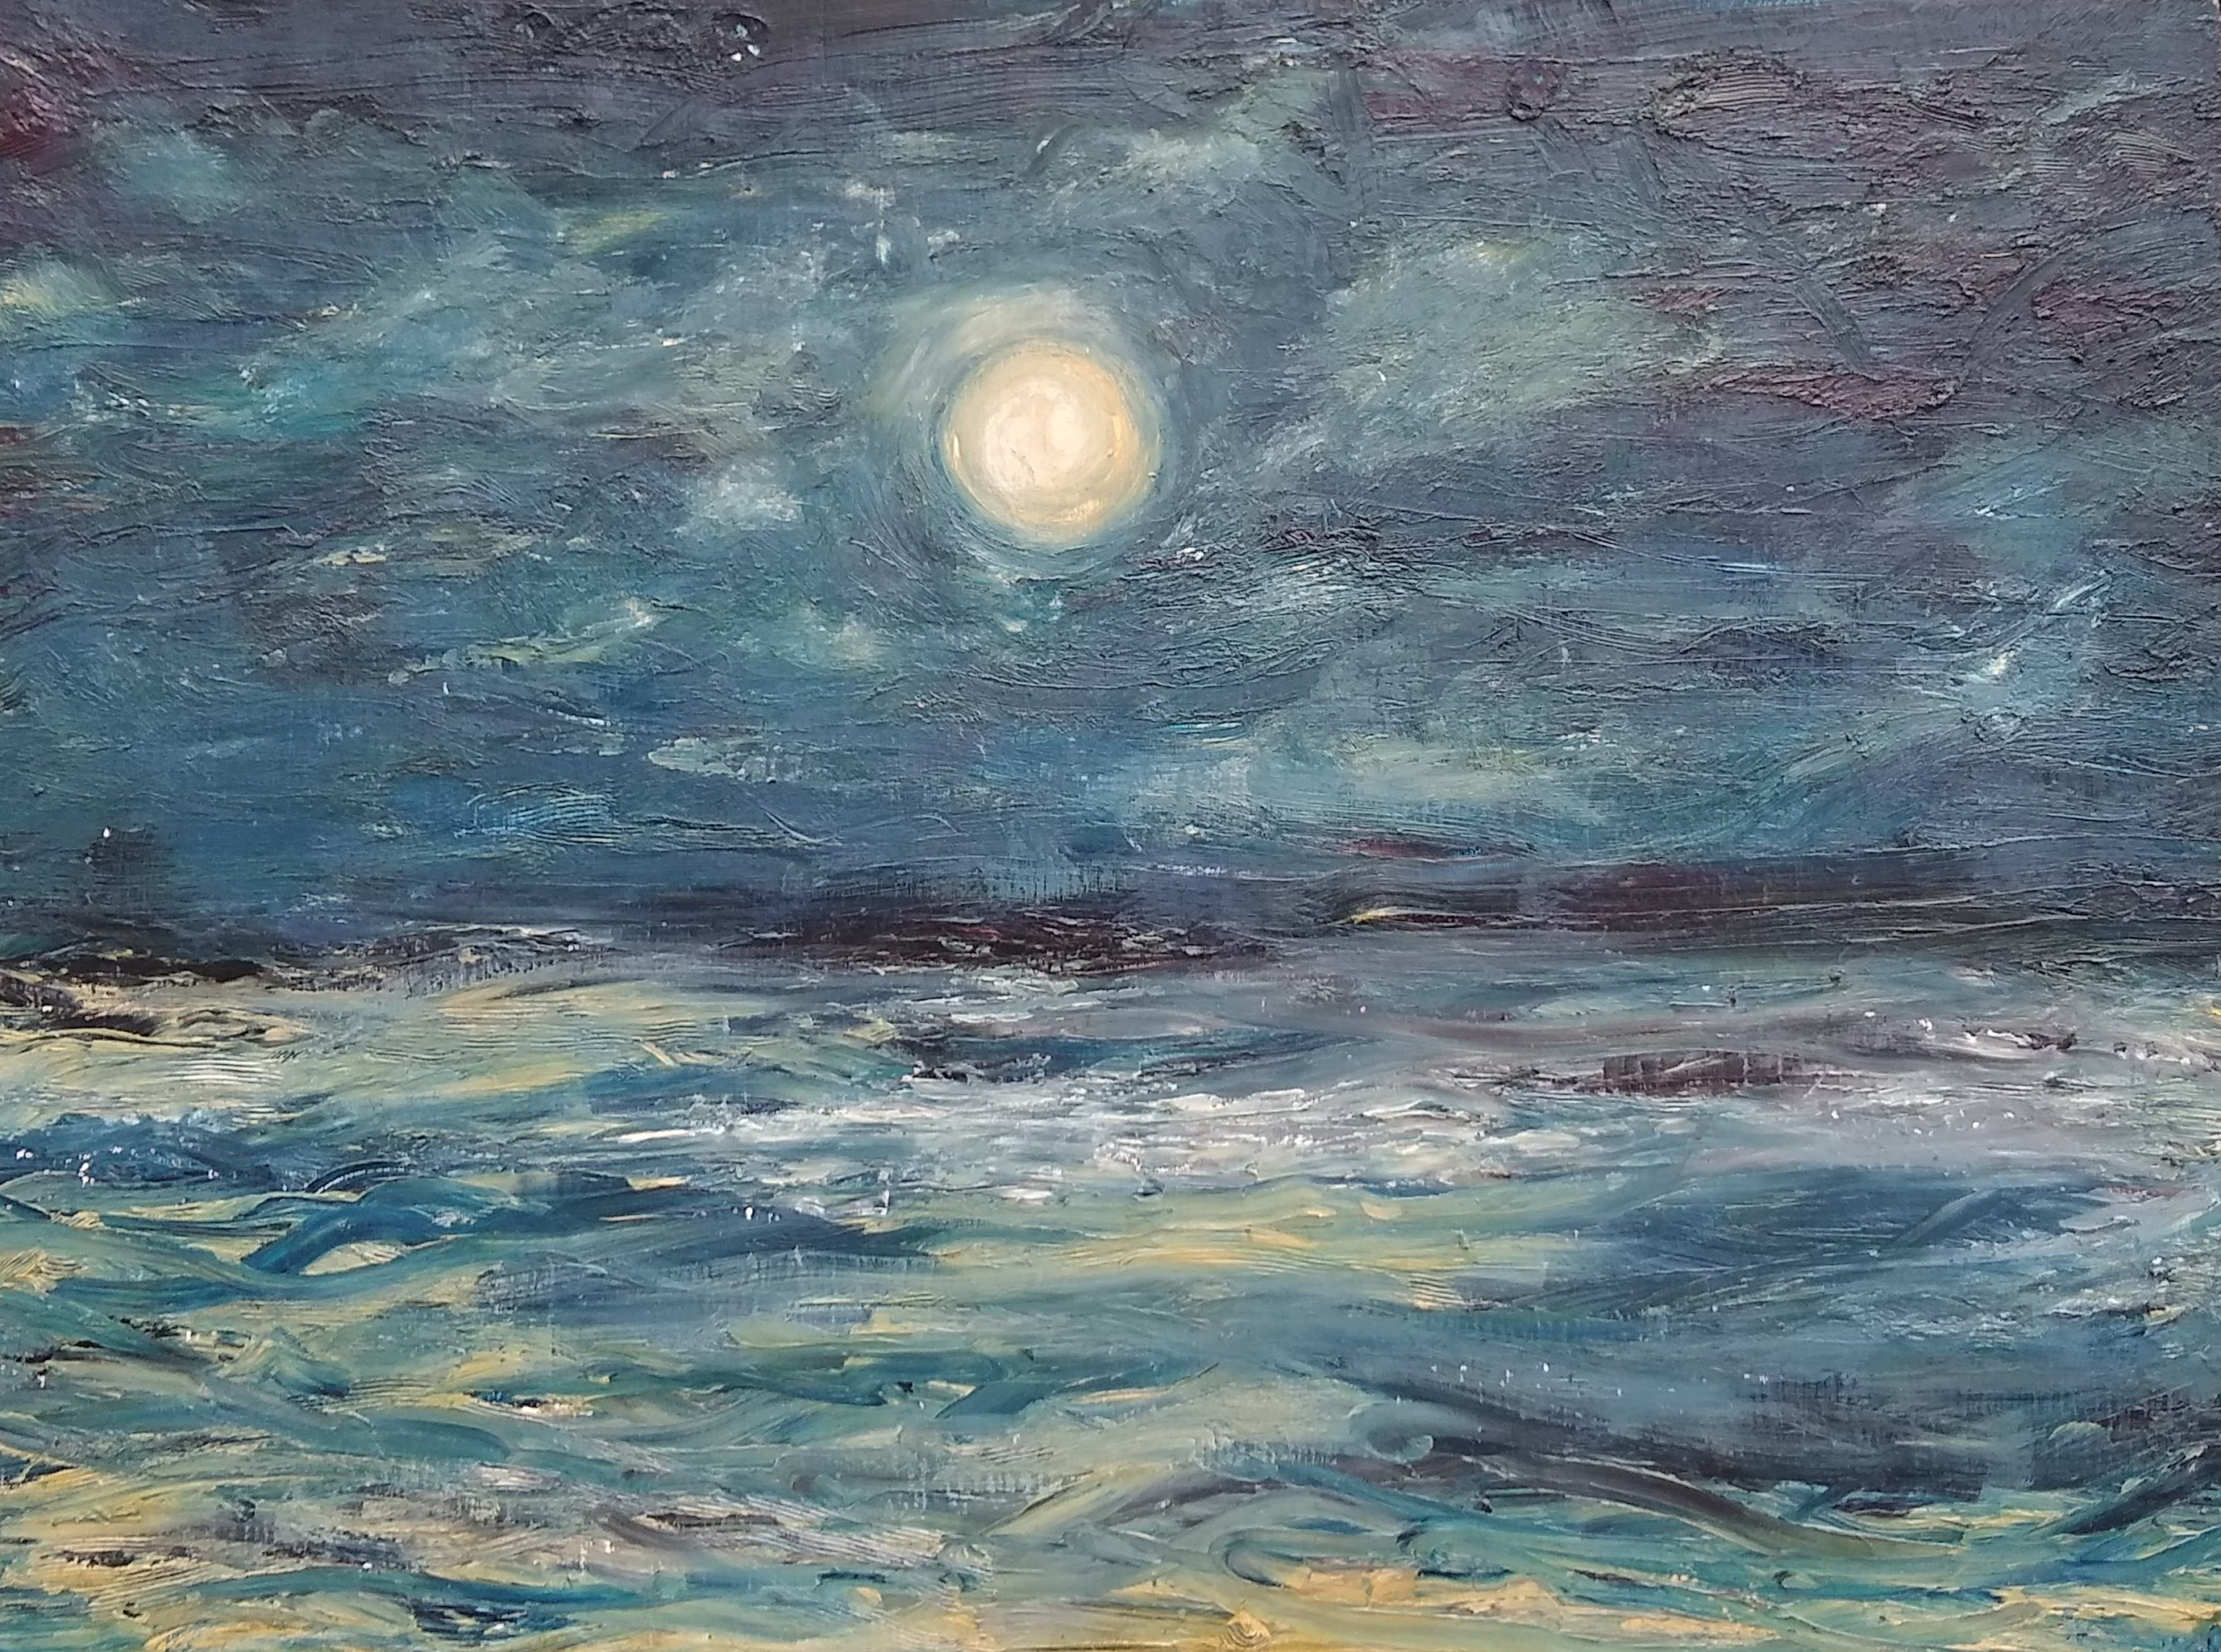 Breakup Moon, painted during the last night of a long relationship in four hours.